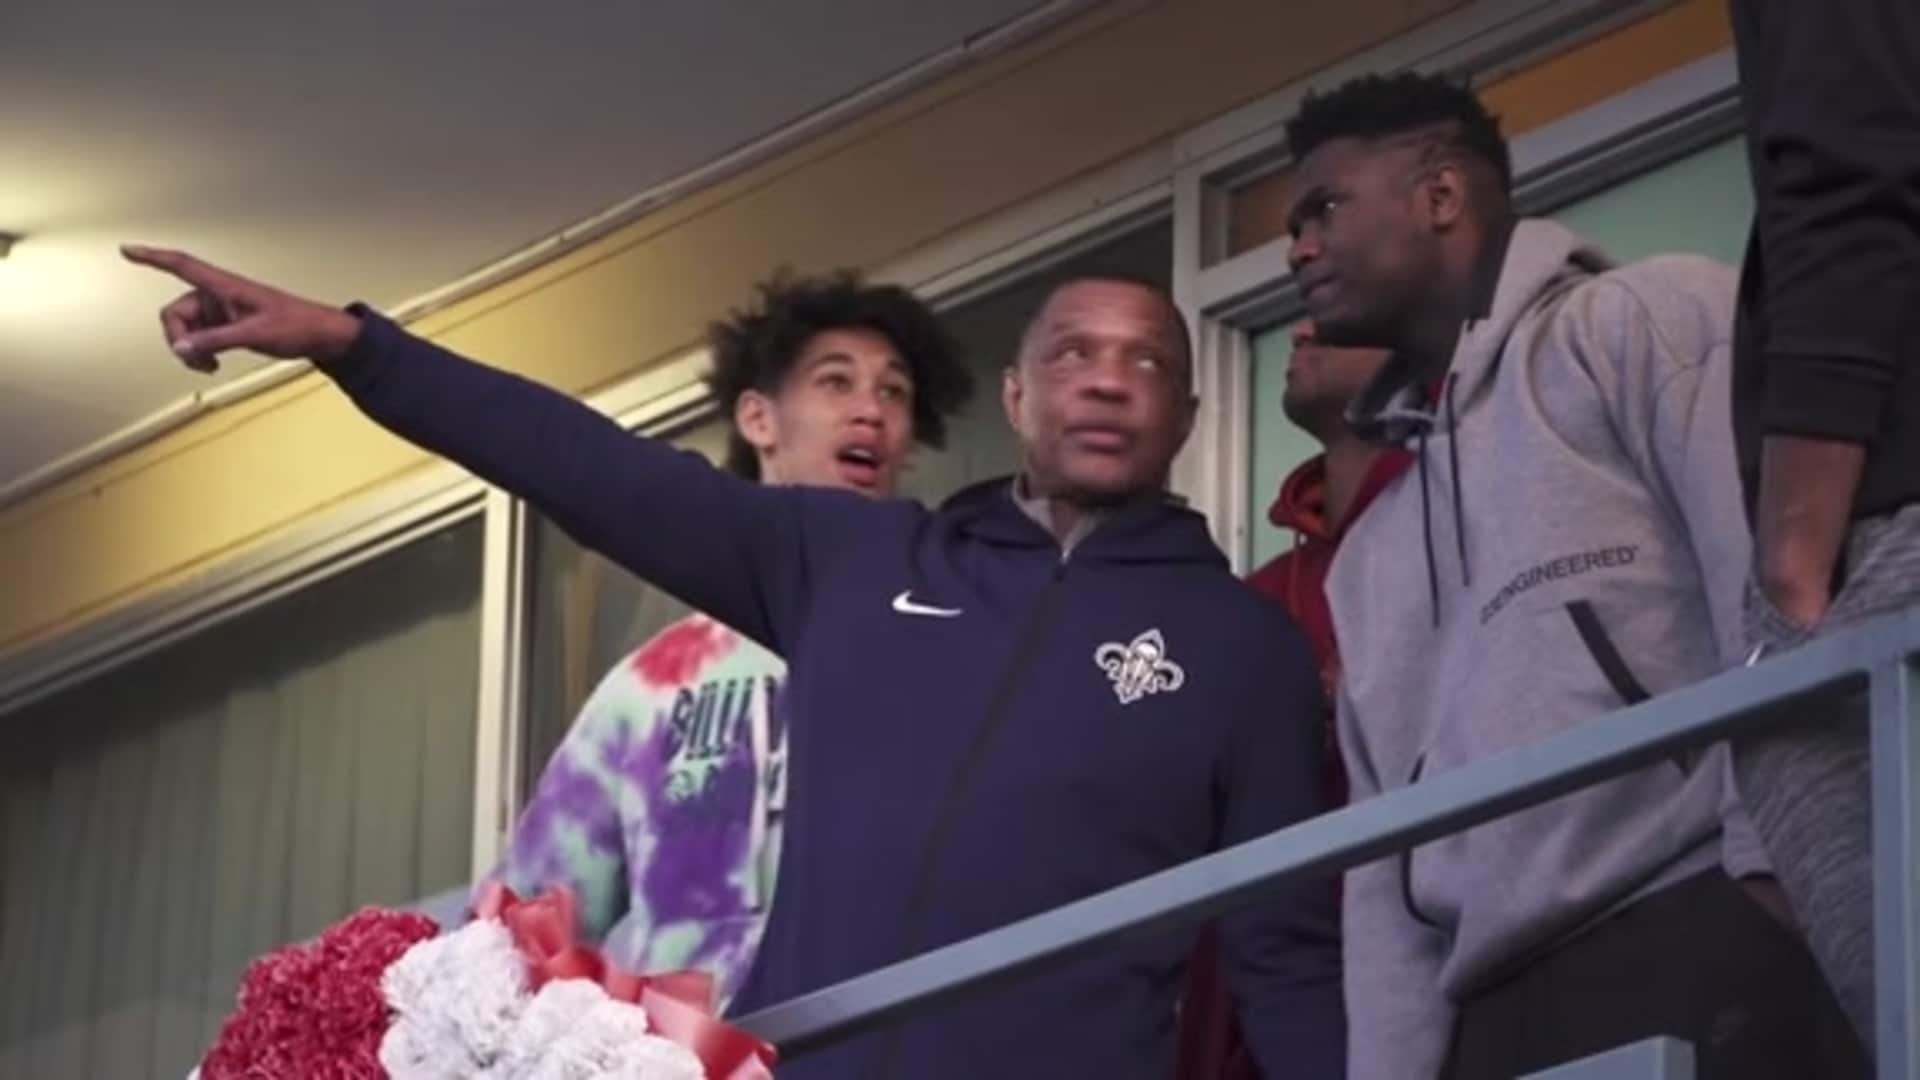 Pelicans players visit National Civil Rights Museum